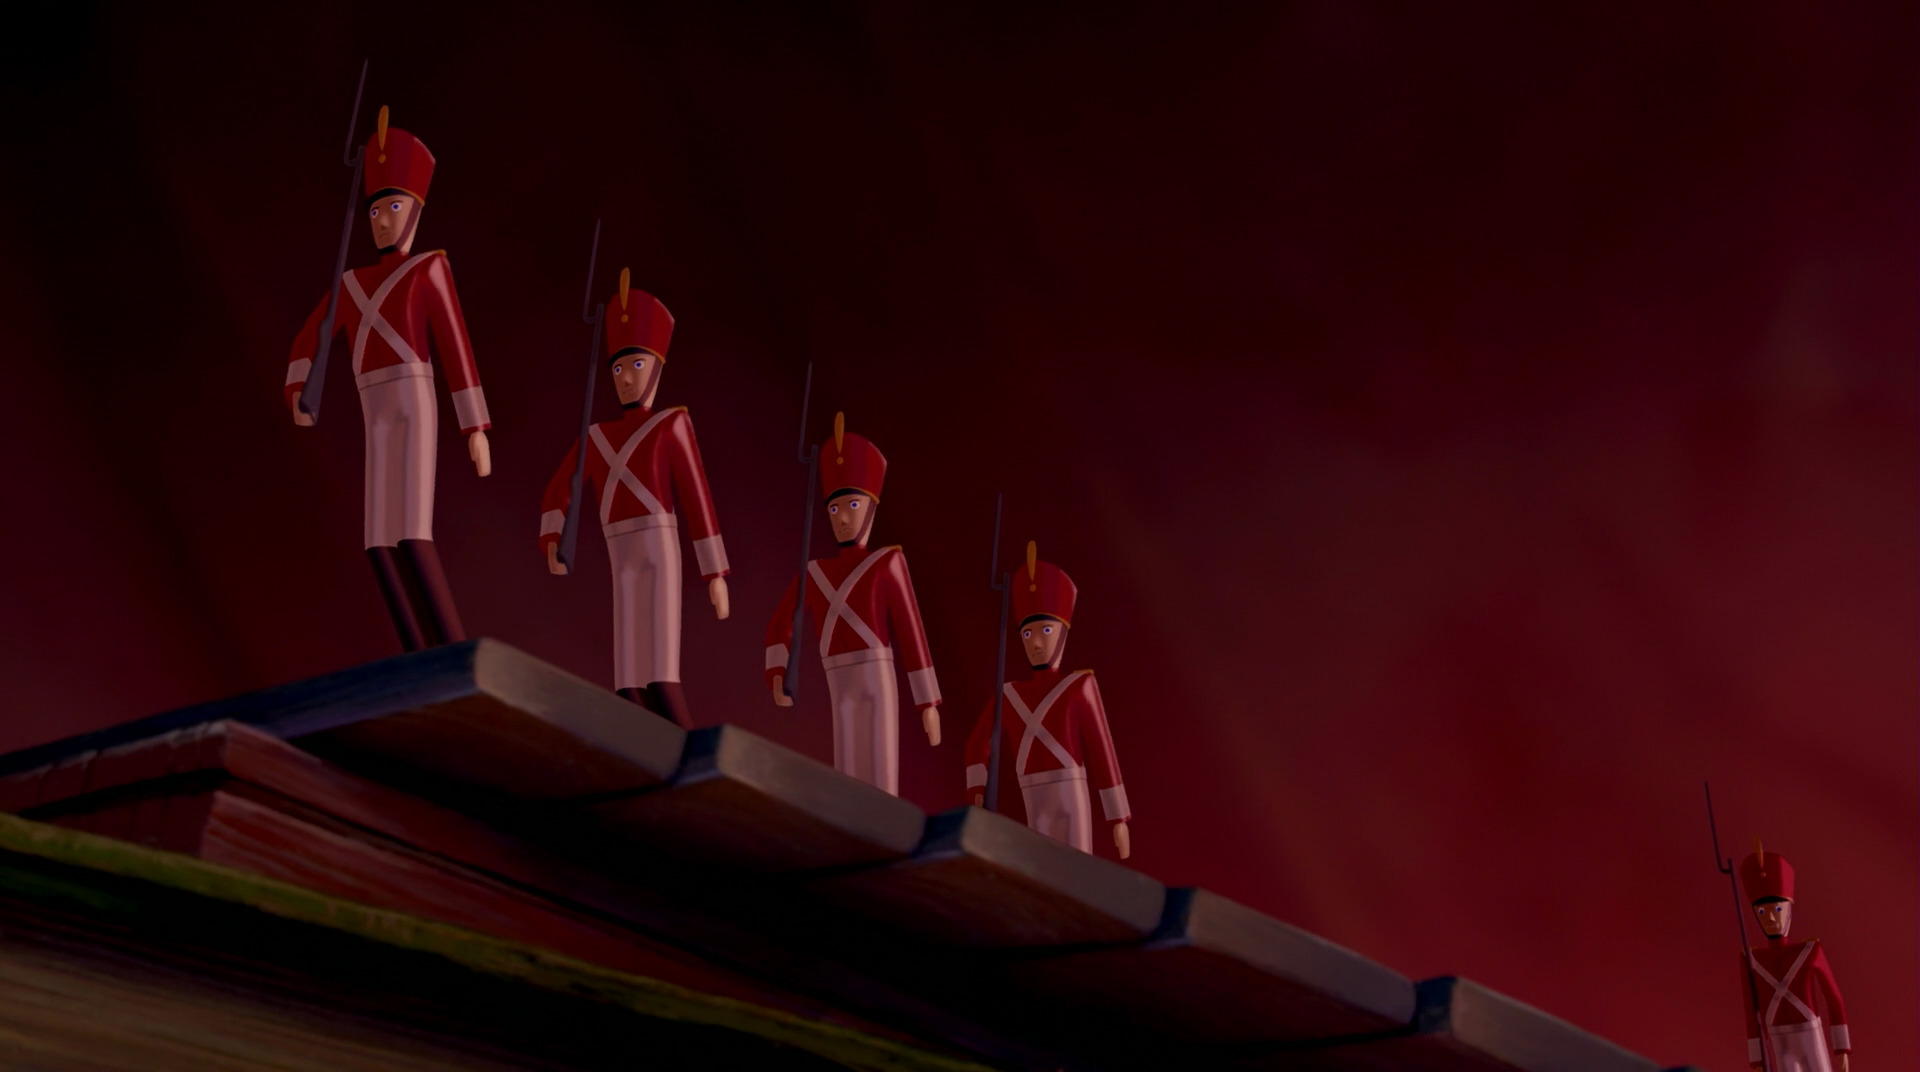 Toy Soldiers (Fantasia 2000)